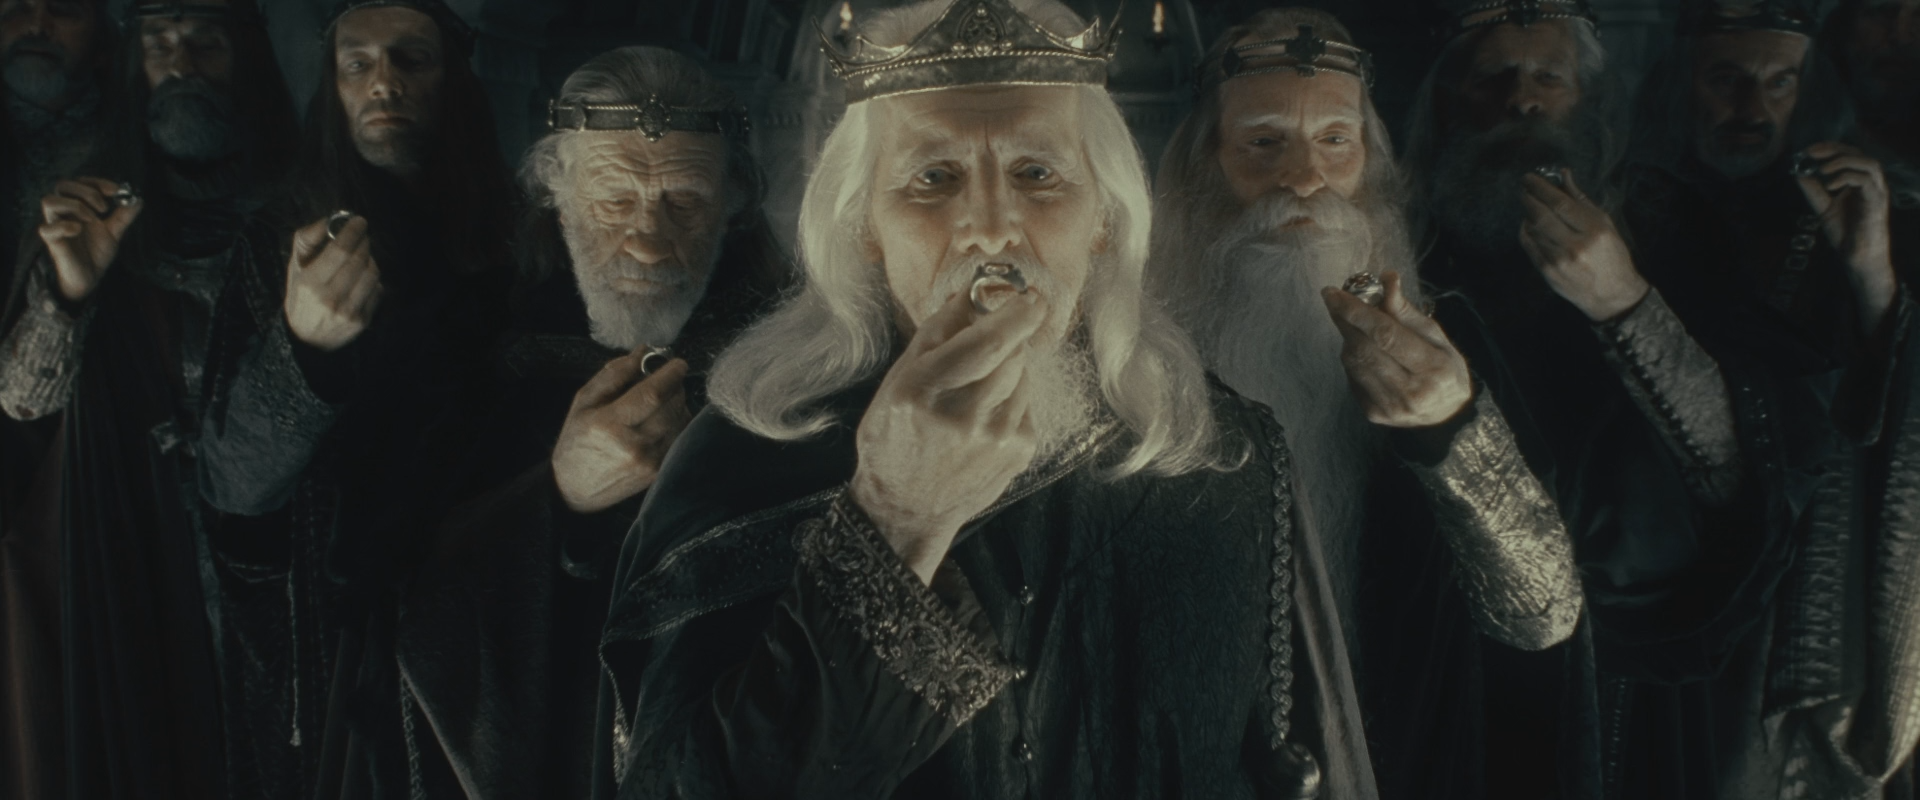 The Nine Rings gave its powerful men recipients more power, wealth, and extended lifespans.